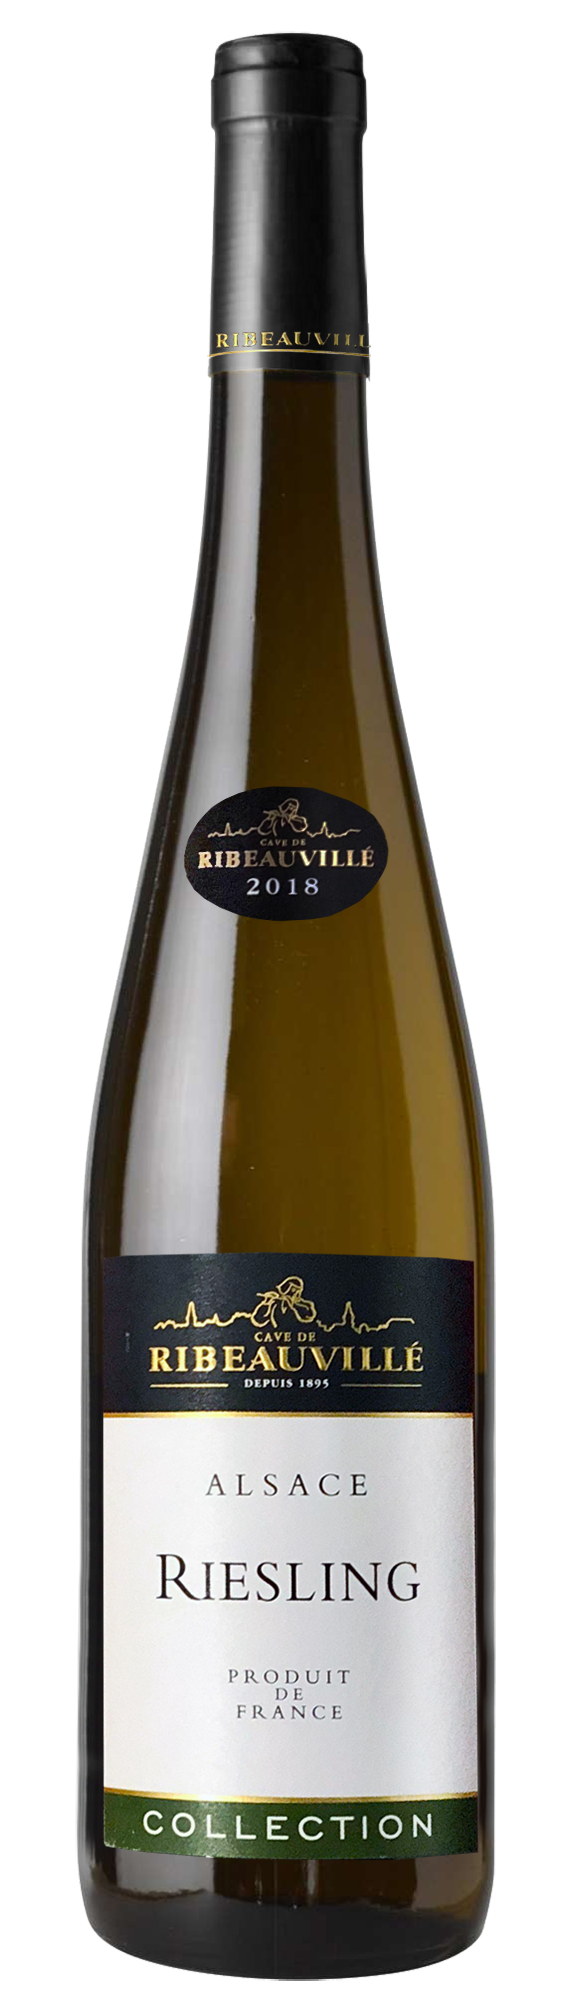 Cave de Ribeauville Collection Riesling - магазин склад winewine